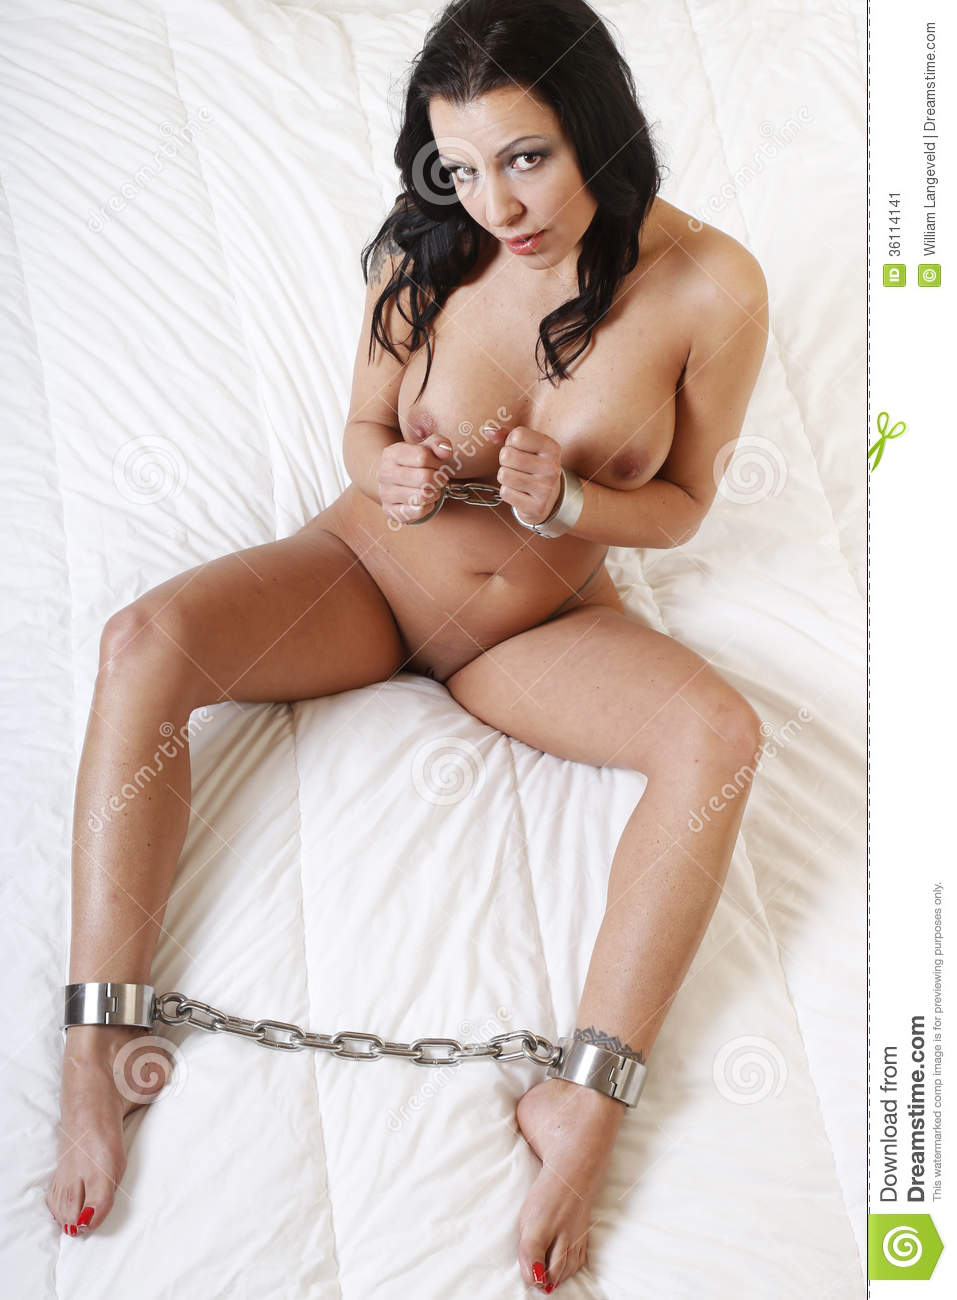 There more bondage handcuffs view tho